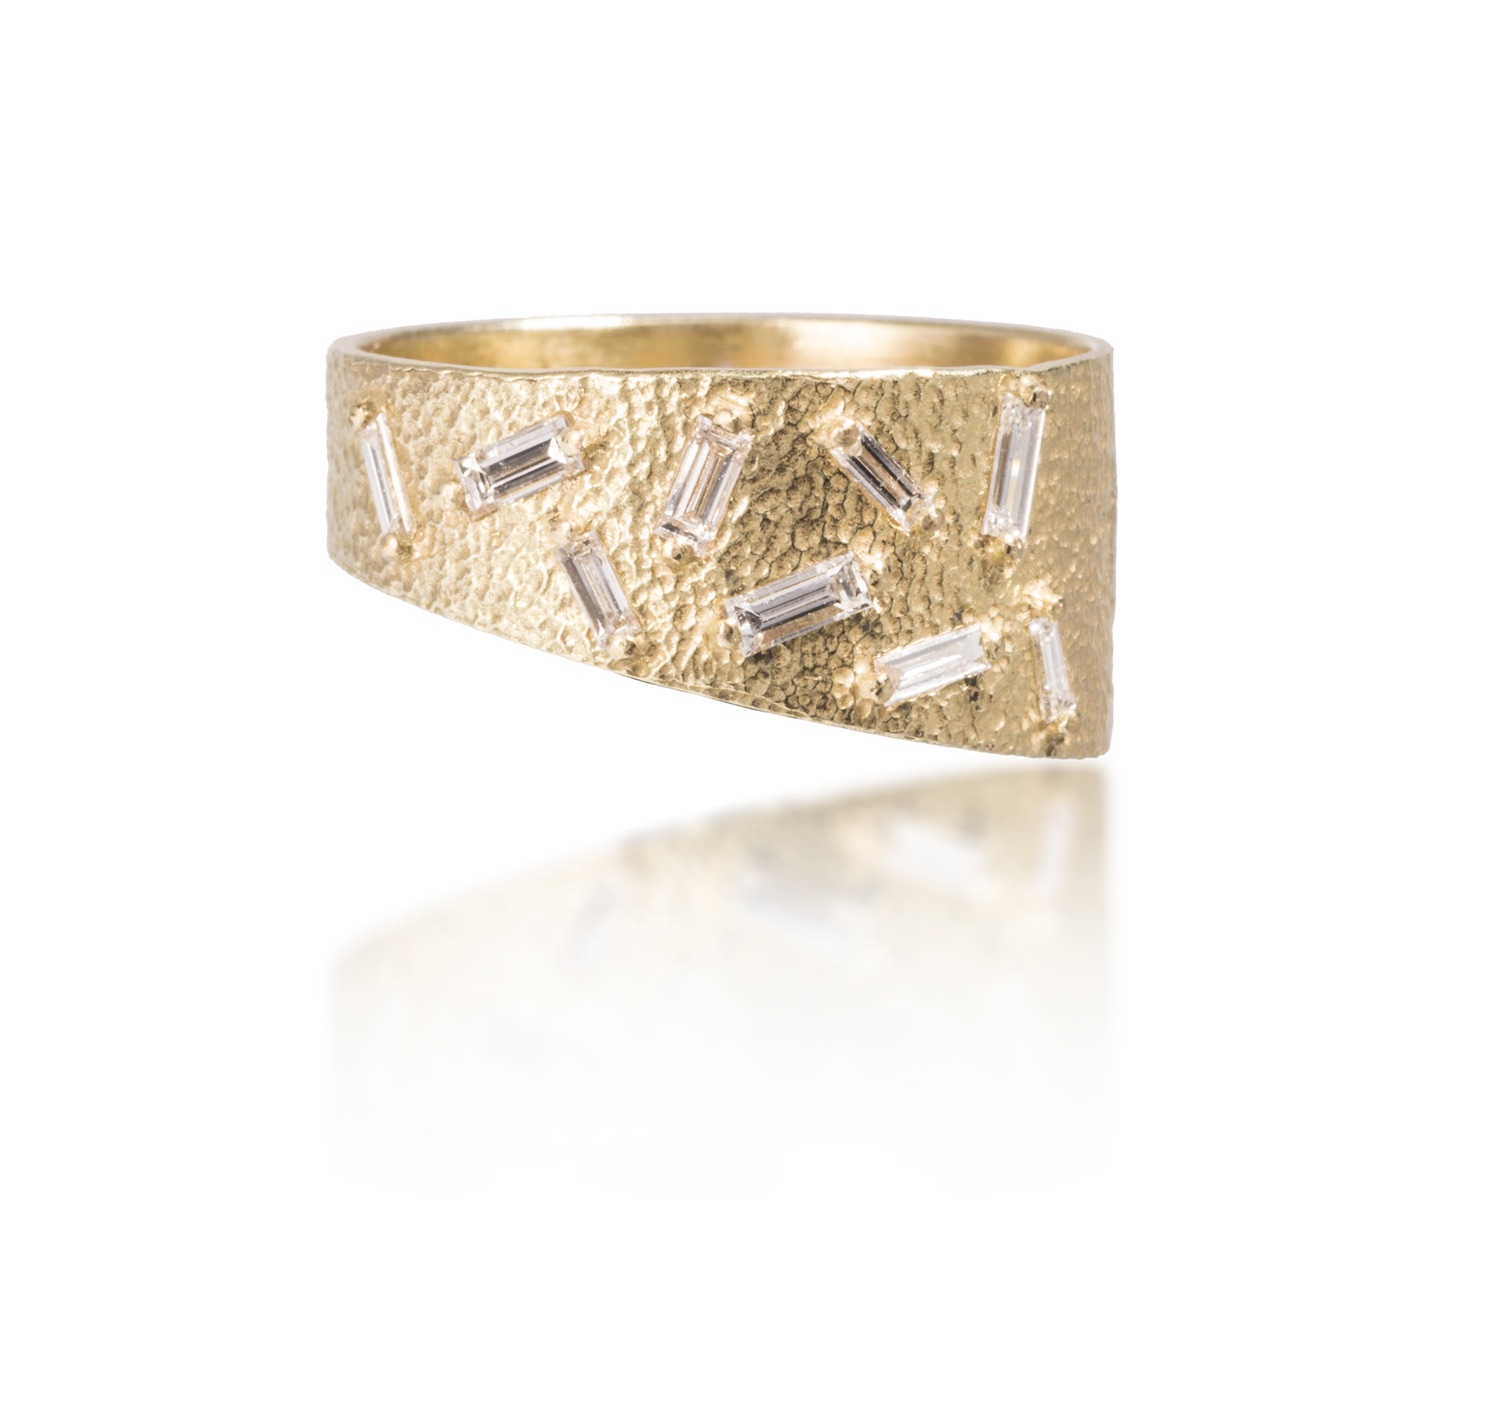 The Jewel - Elizabeth Garvin - Lookbook - Gold Asymmetrical RIng